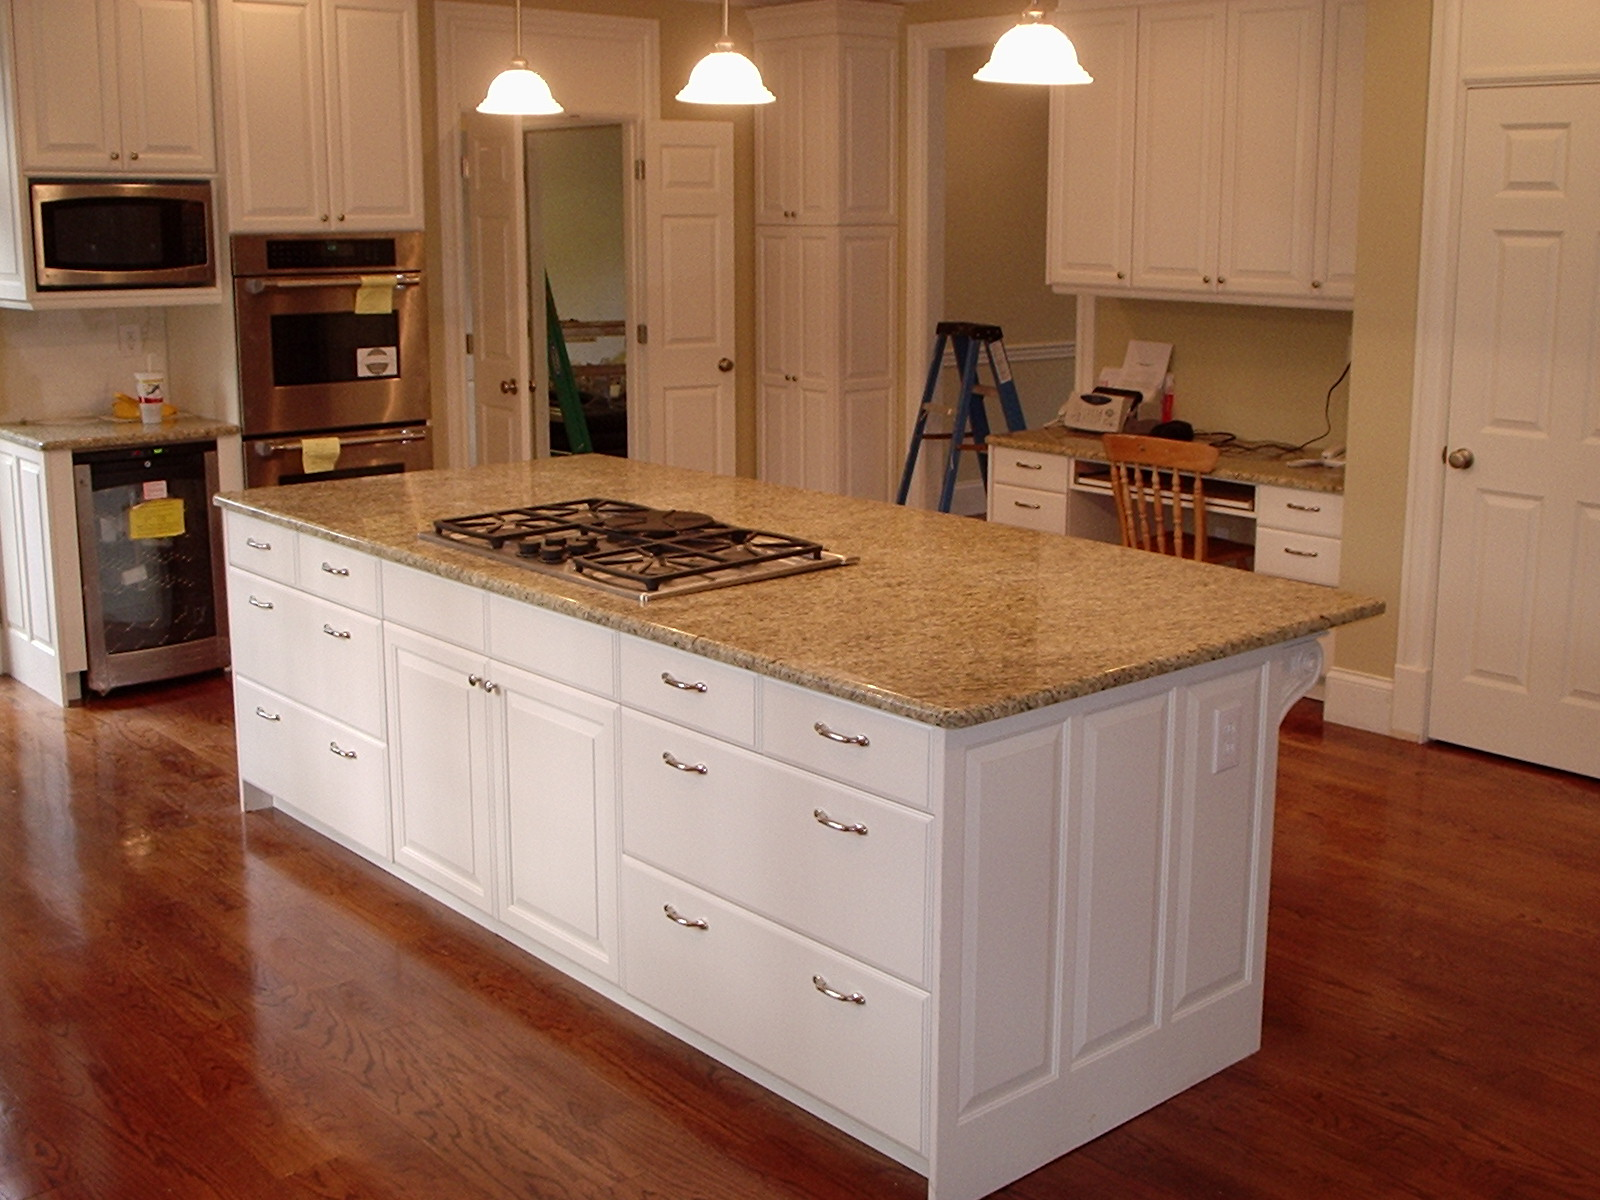 Simple kitchen cabinets handles 2016 - Kitchen cabinets with handles ...